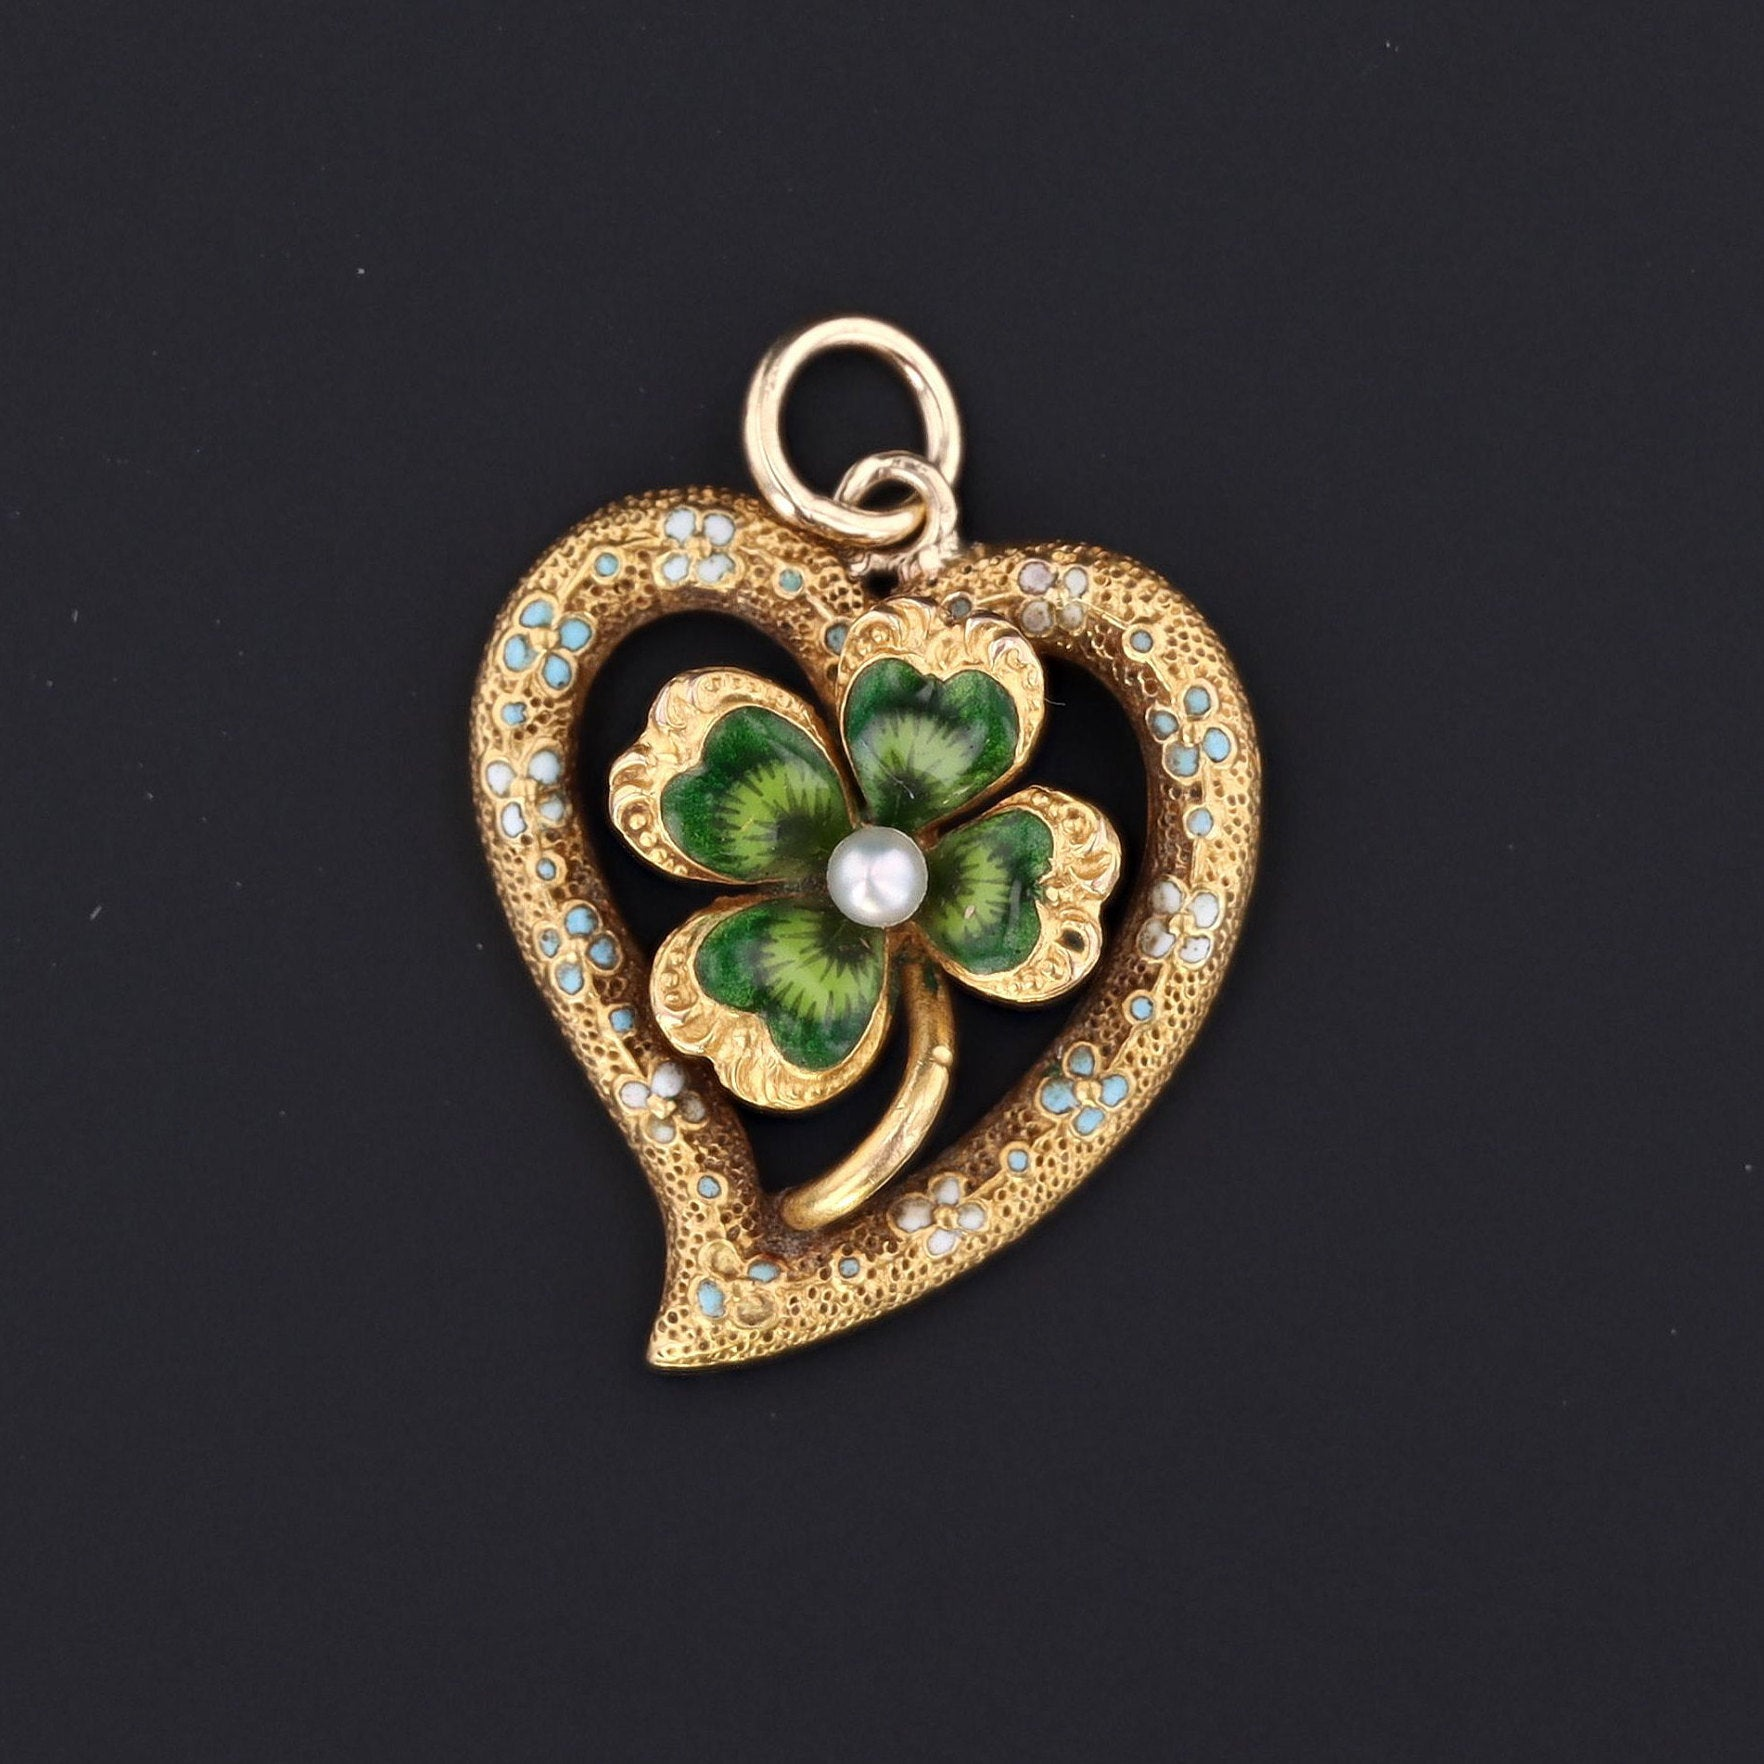 Four Leaf Clover Pendant | Enamel Clover Pendant | Heart Pendant | 14k Gold Pendant | Antique Pin Conversion